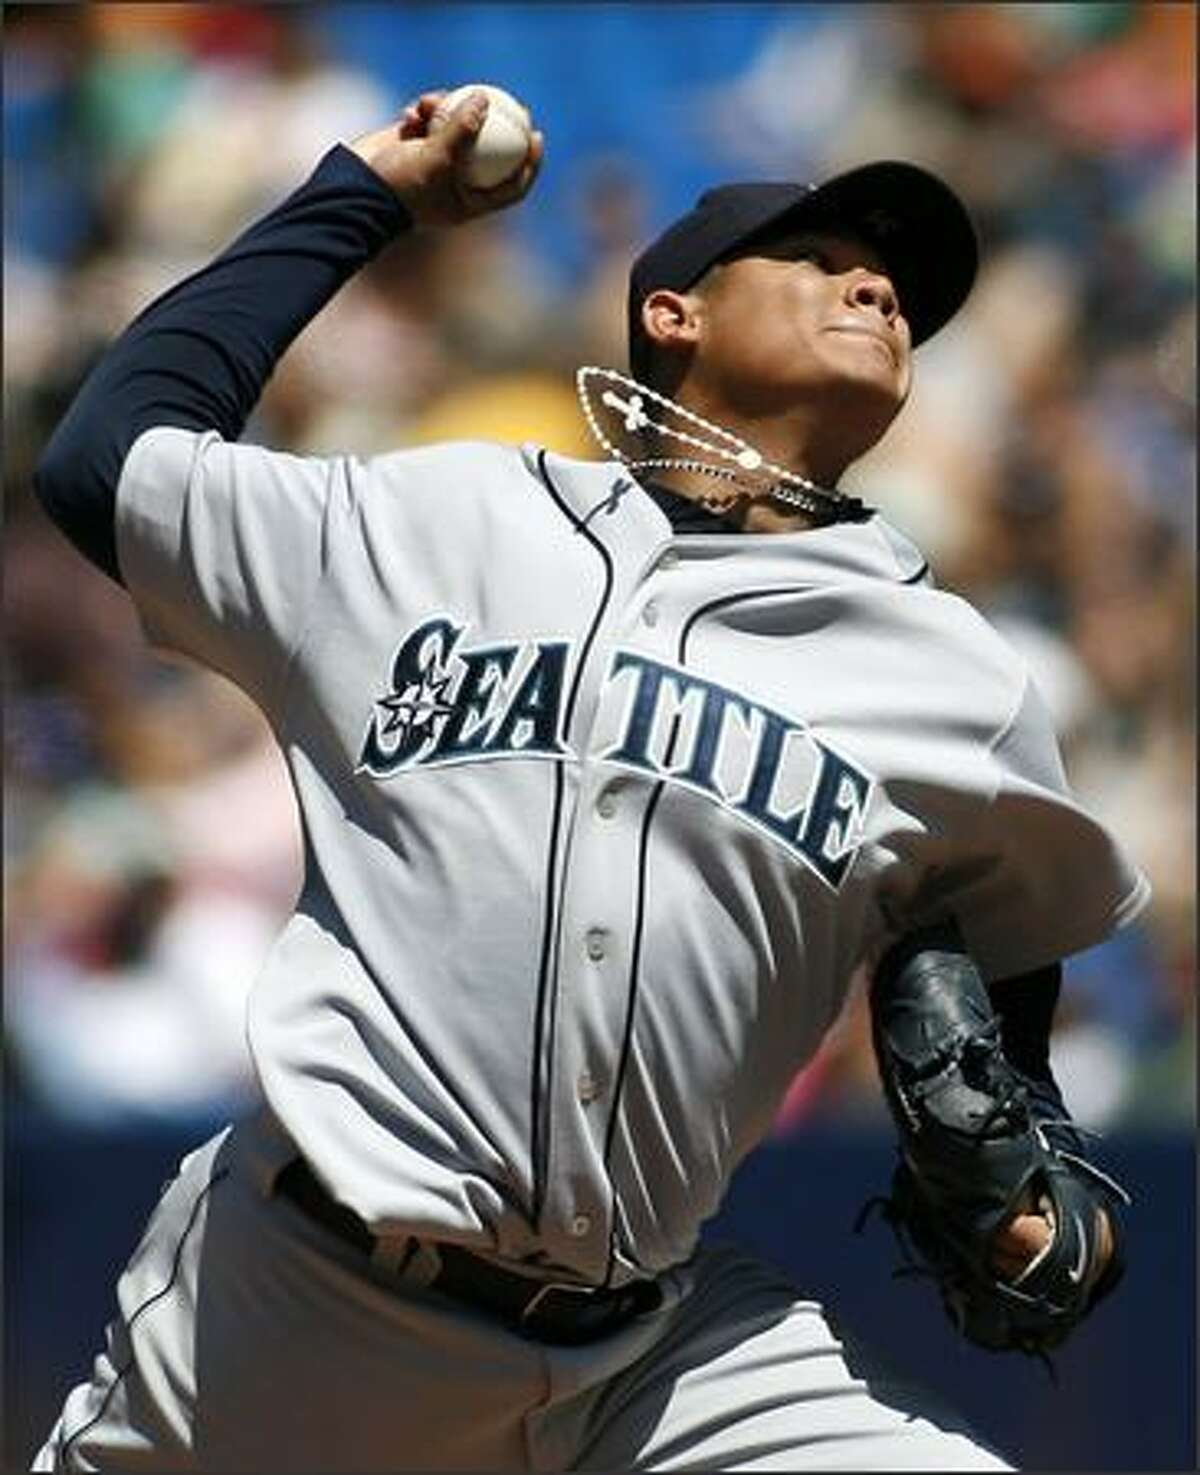 Seattle Mariners starting pitcher Felix Hernandez pitches against the Toronto Blue Jays during the fourth inning. (AP Photo/Nathan Denette, CP)